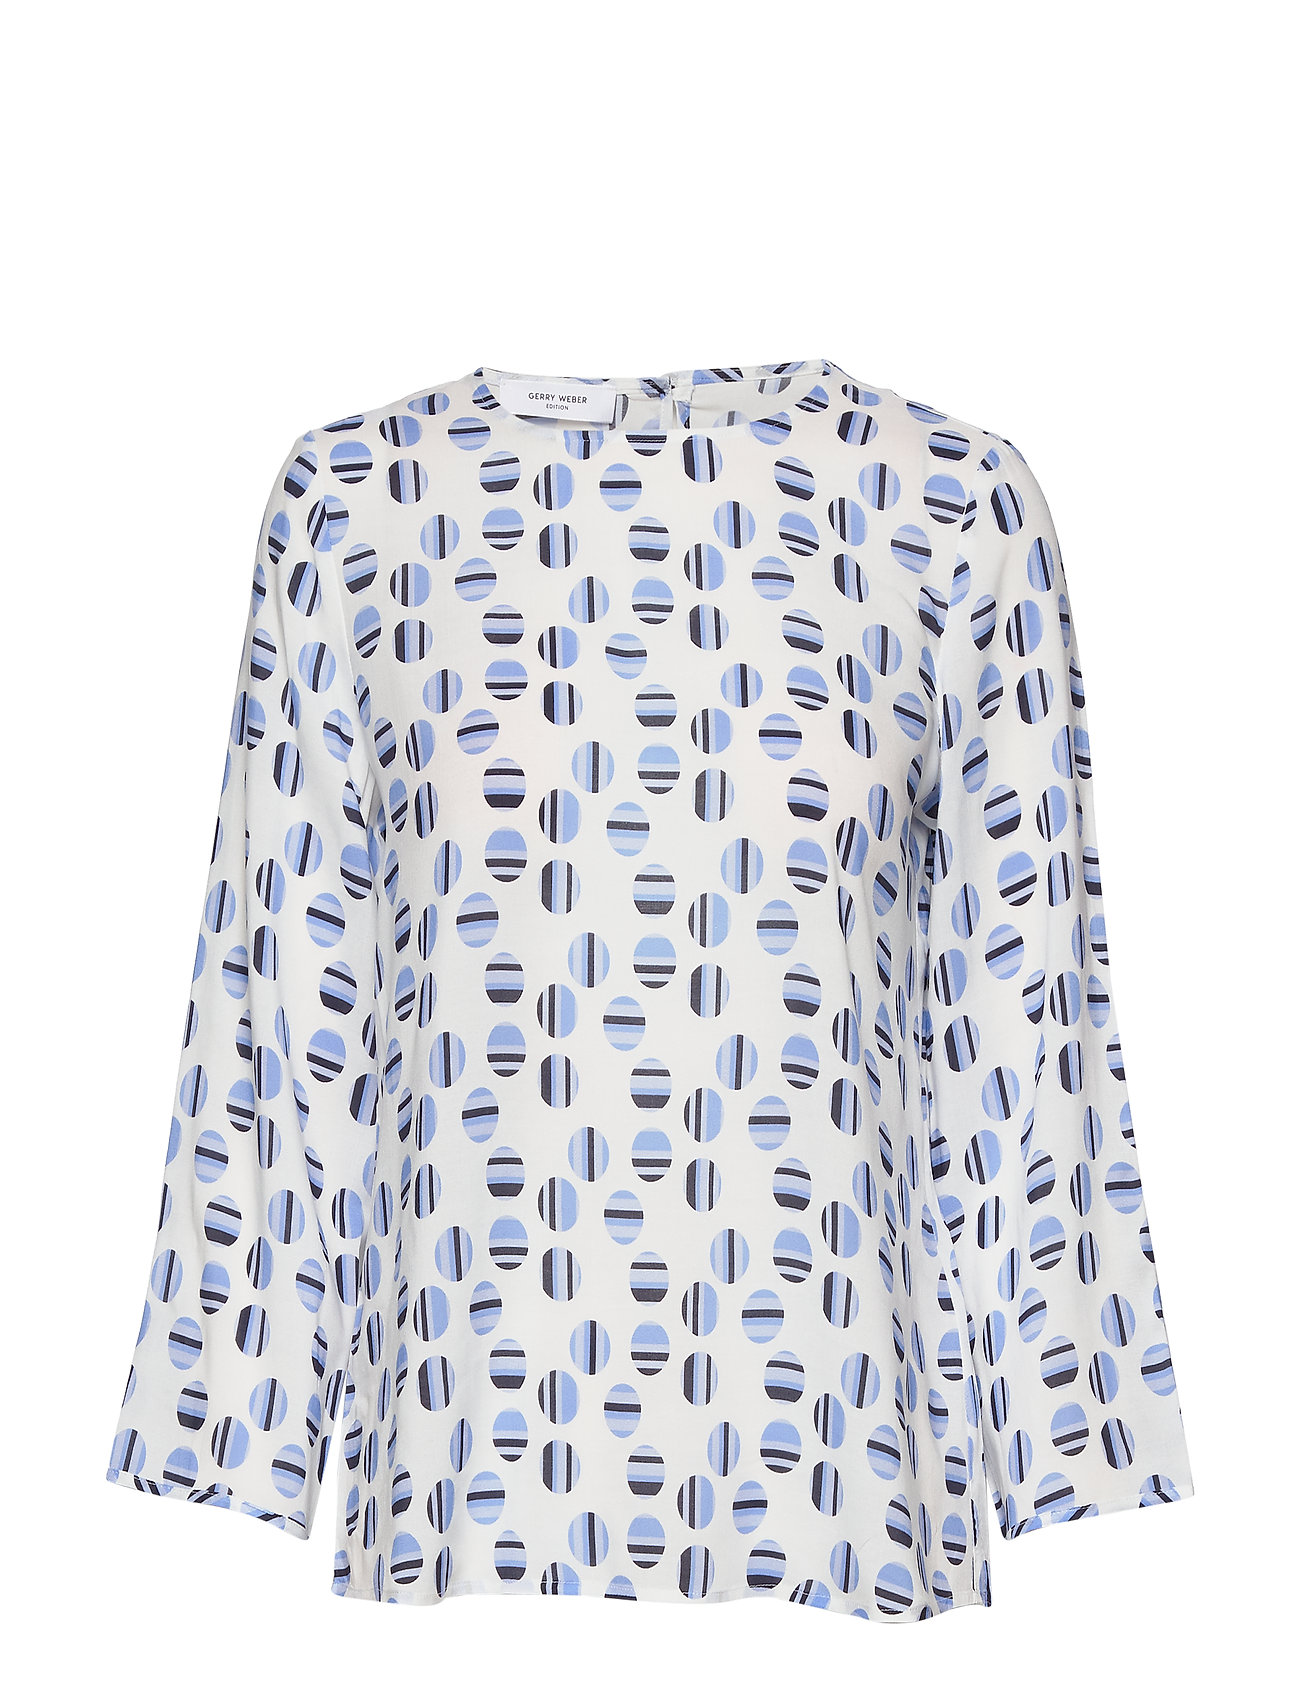 Gerry Weber Edition BLOUSE LONG-SLEEVE - OFFWHITE-BLUE-NAVY